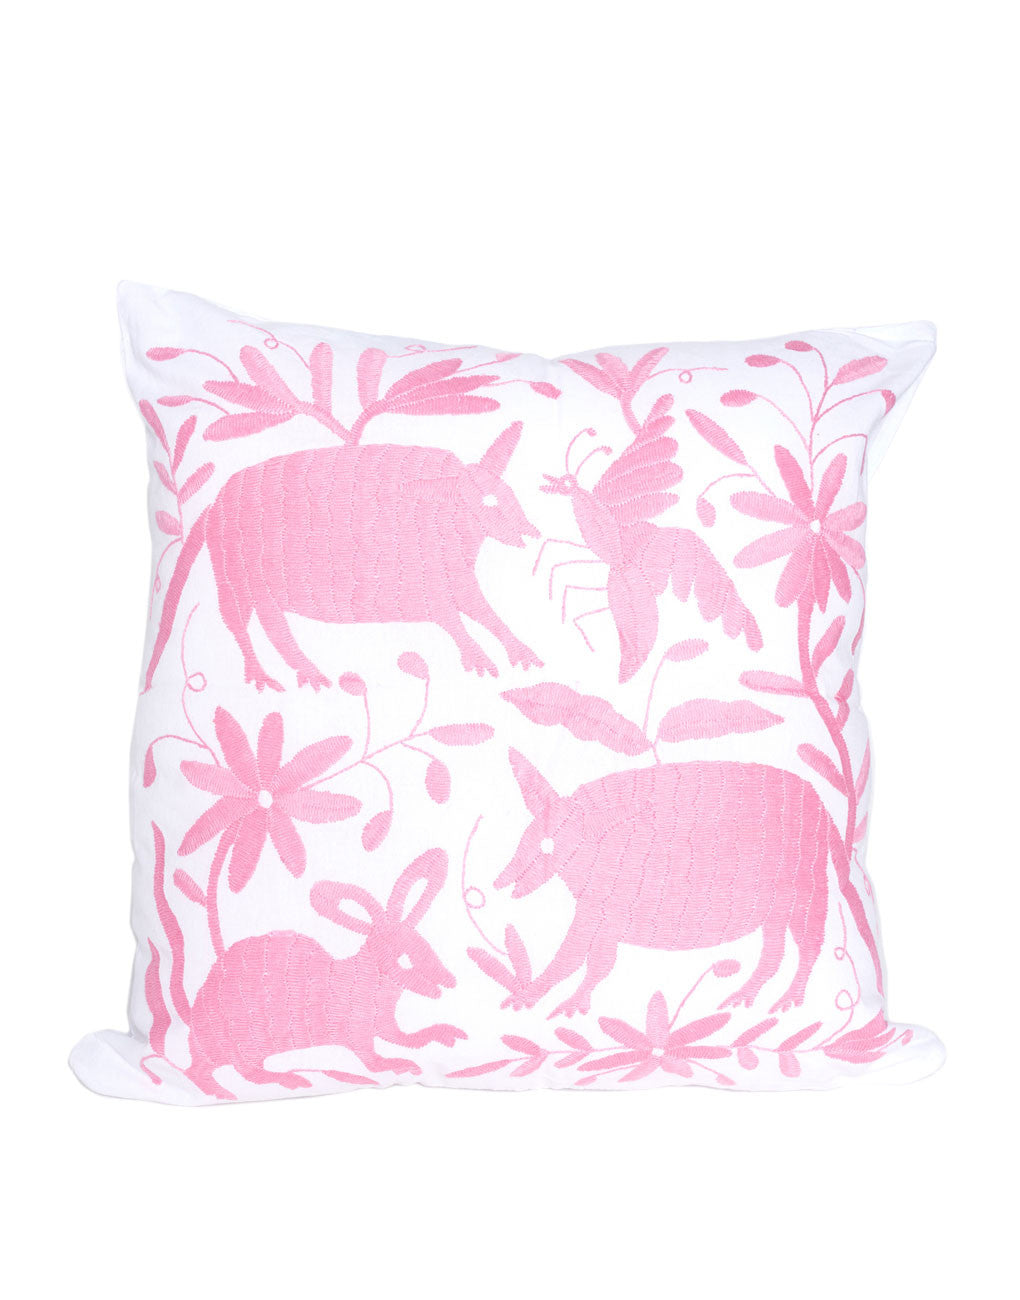 Tenango Embroidered Pillow - Pink